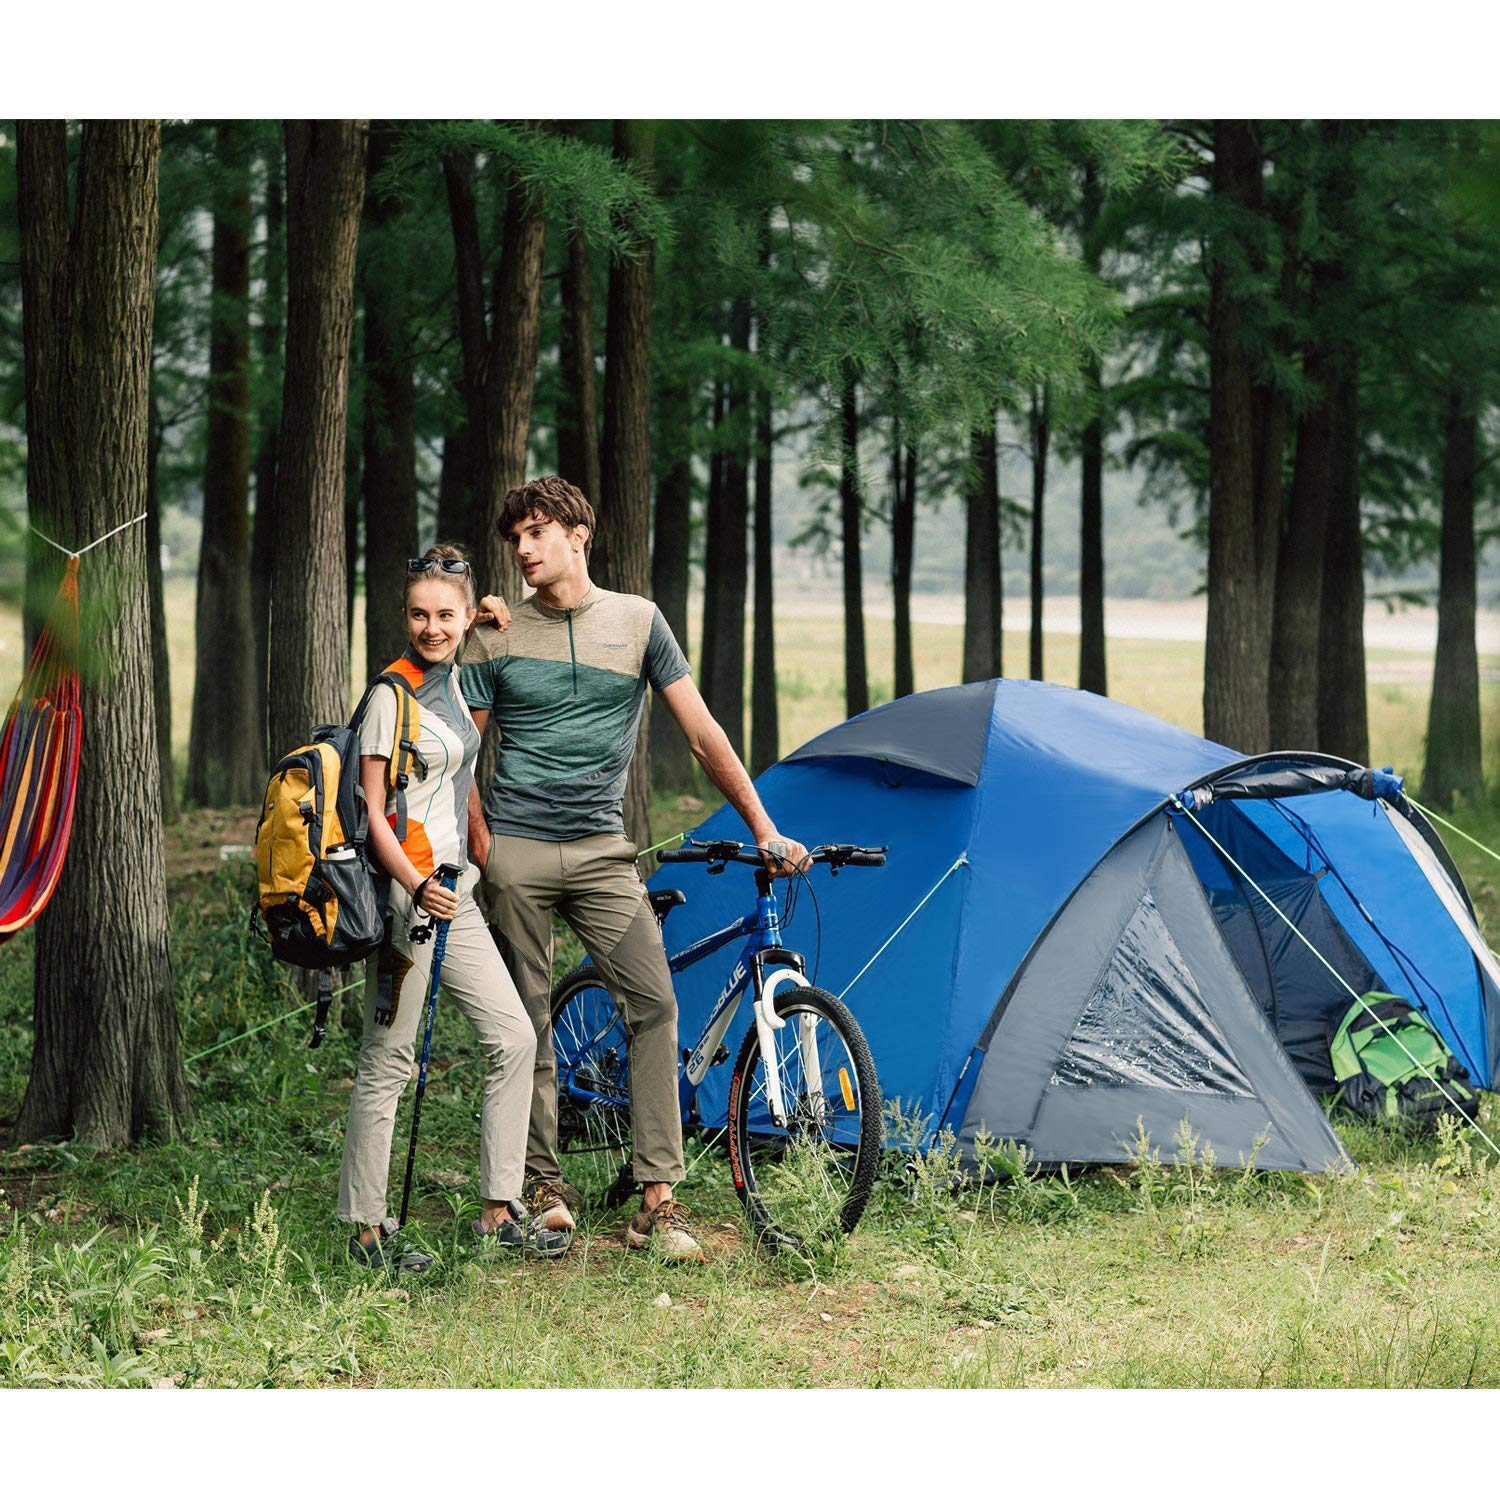 Lightweight to Carry with Carry Bag Semoo Waterproof 3 Seasons Family Camp Tent 2-3 People Double Layers